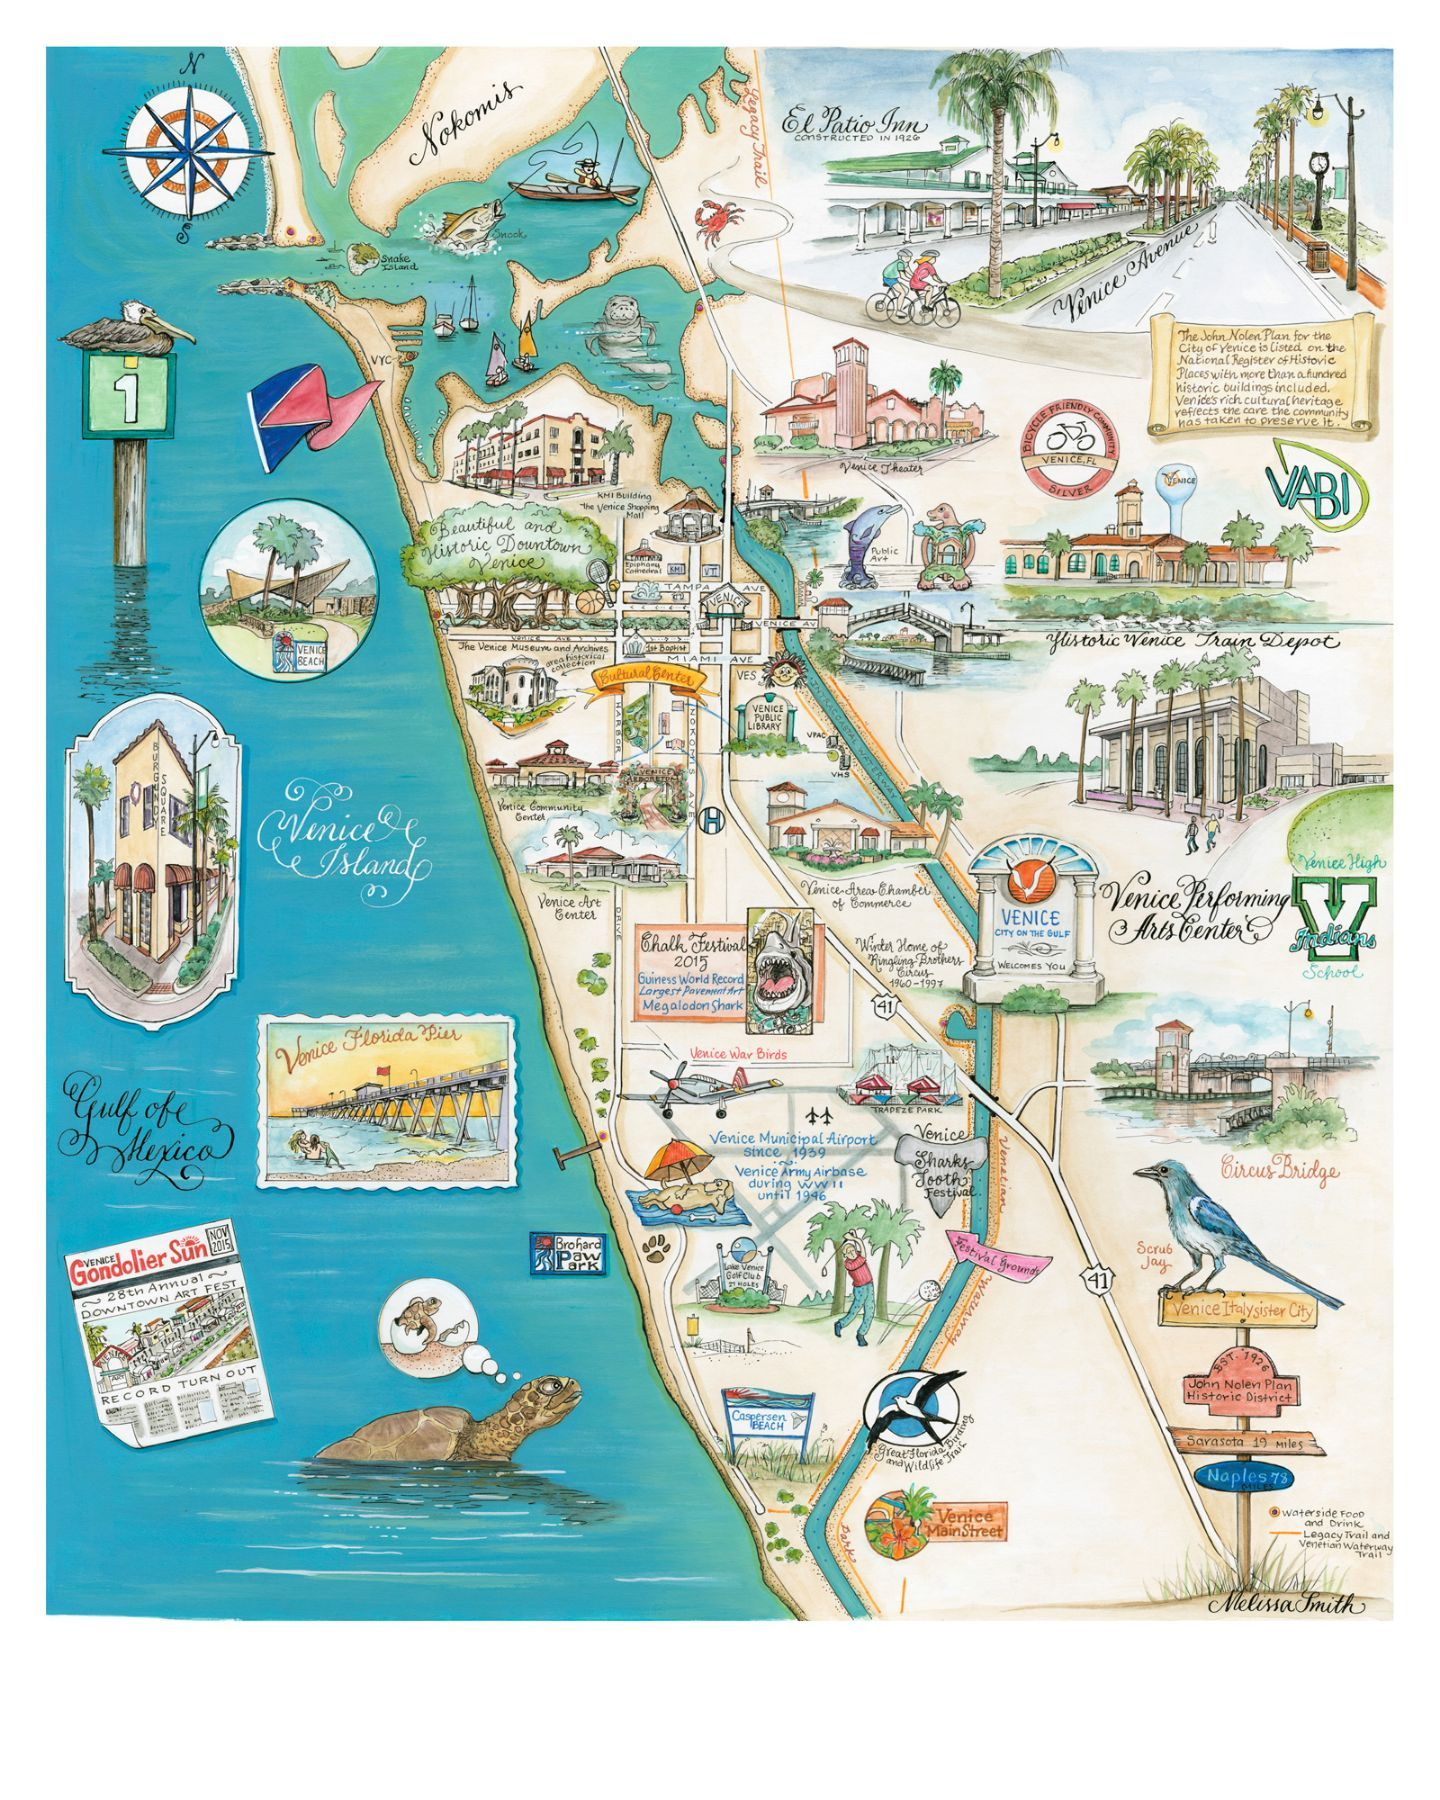 Venice, Florida Map - This Map Is One Of The Prettiest Maps I Have - Nokomis Florida Map